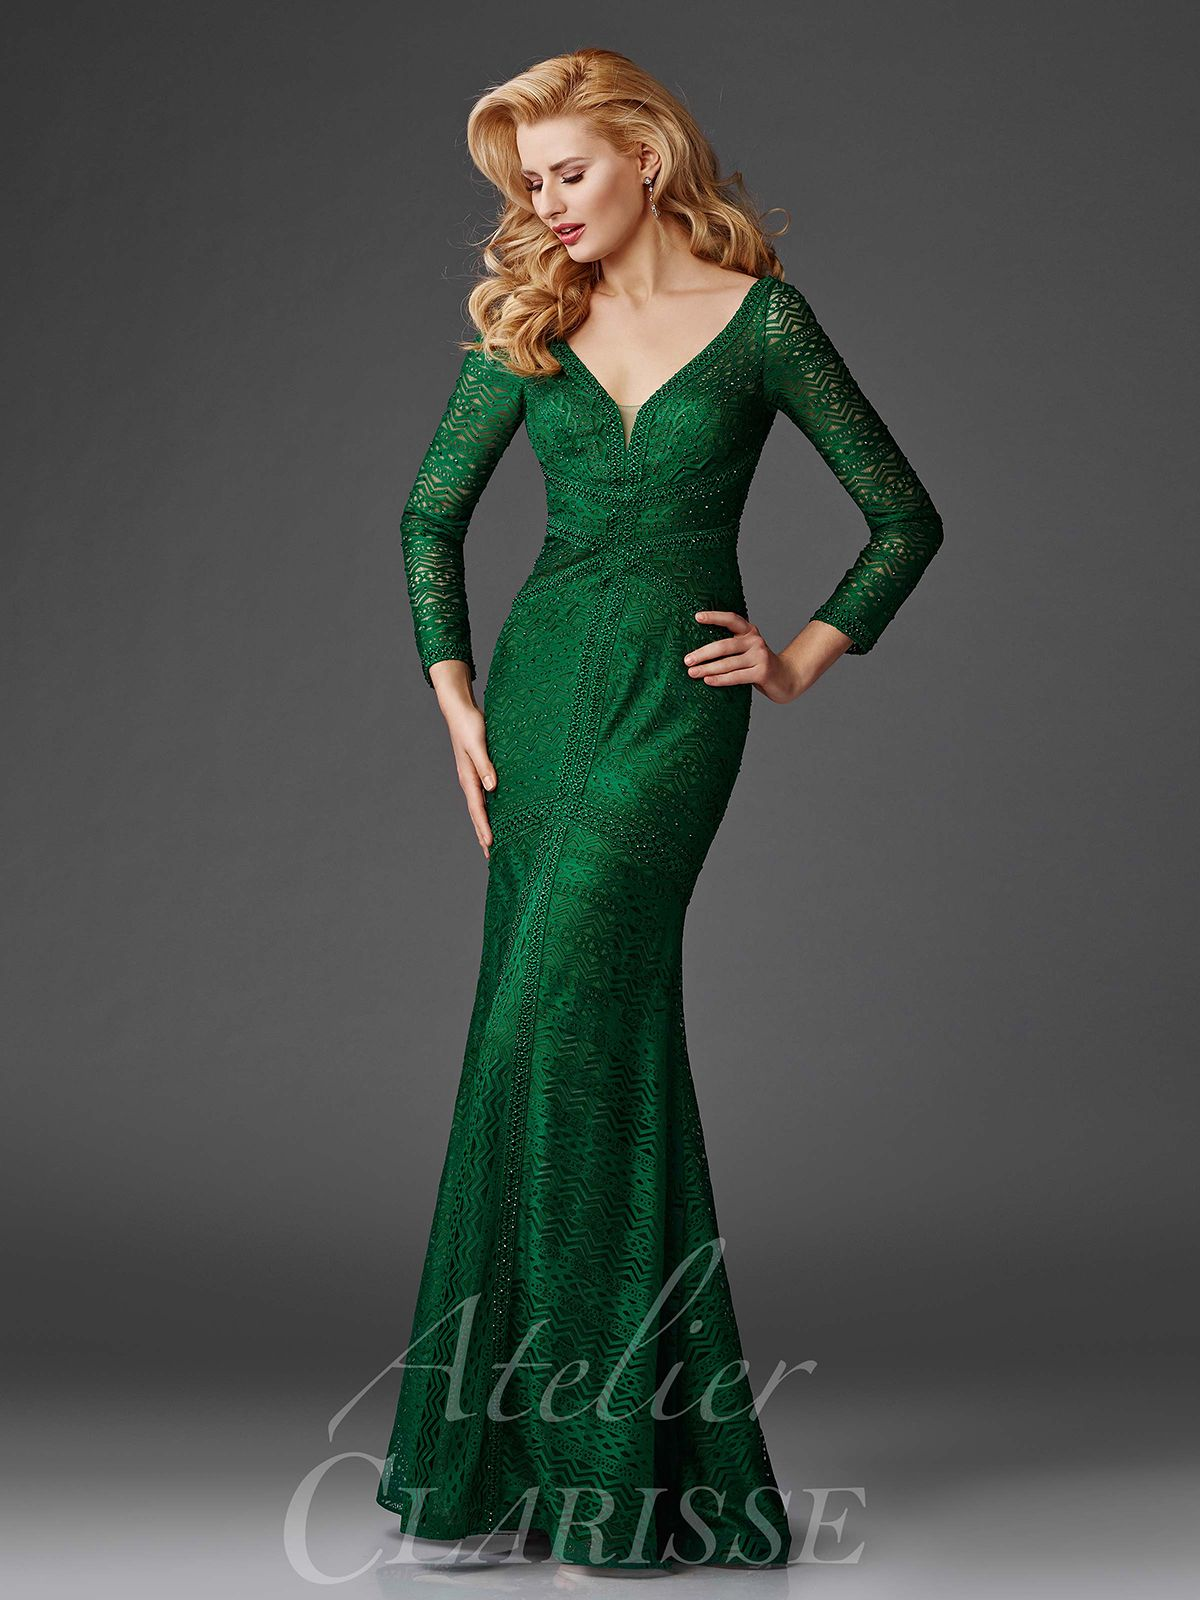 Forest Green Long Sleeve Evening Gown M6431 | Mother Of The Bride ...